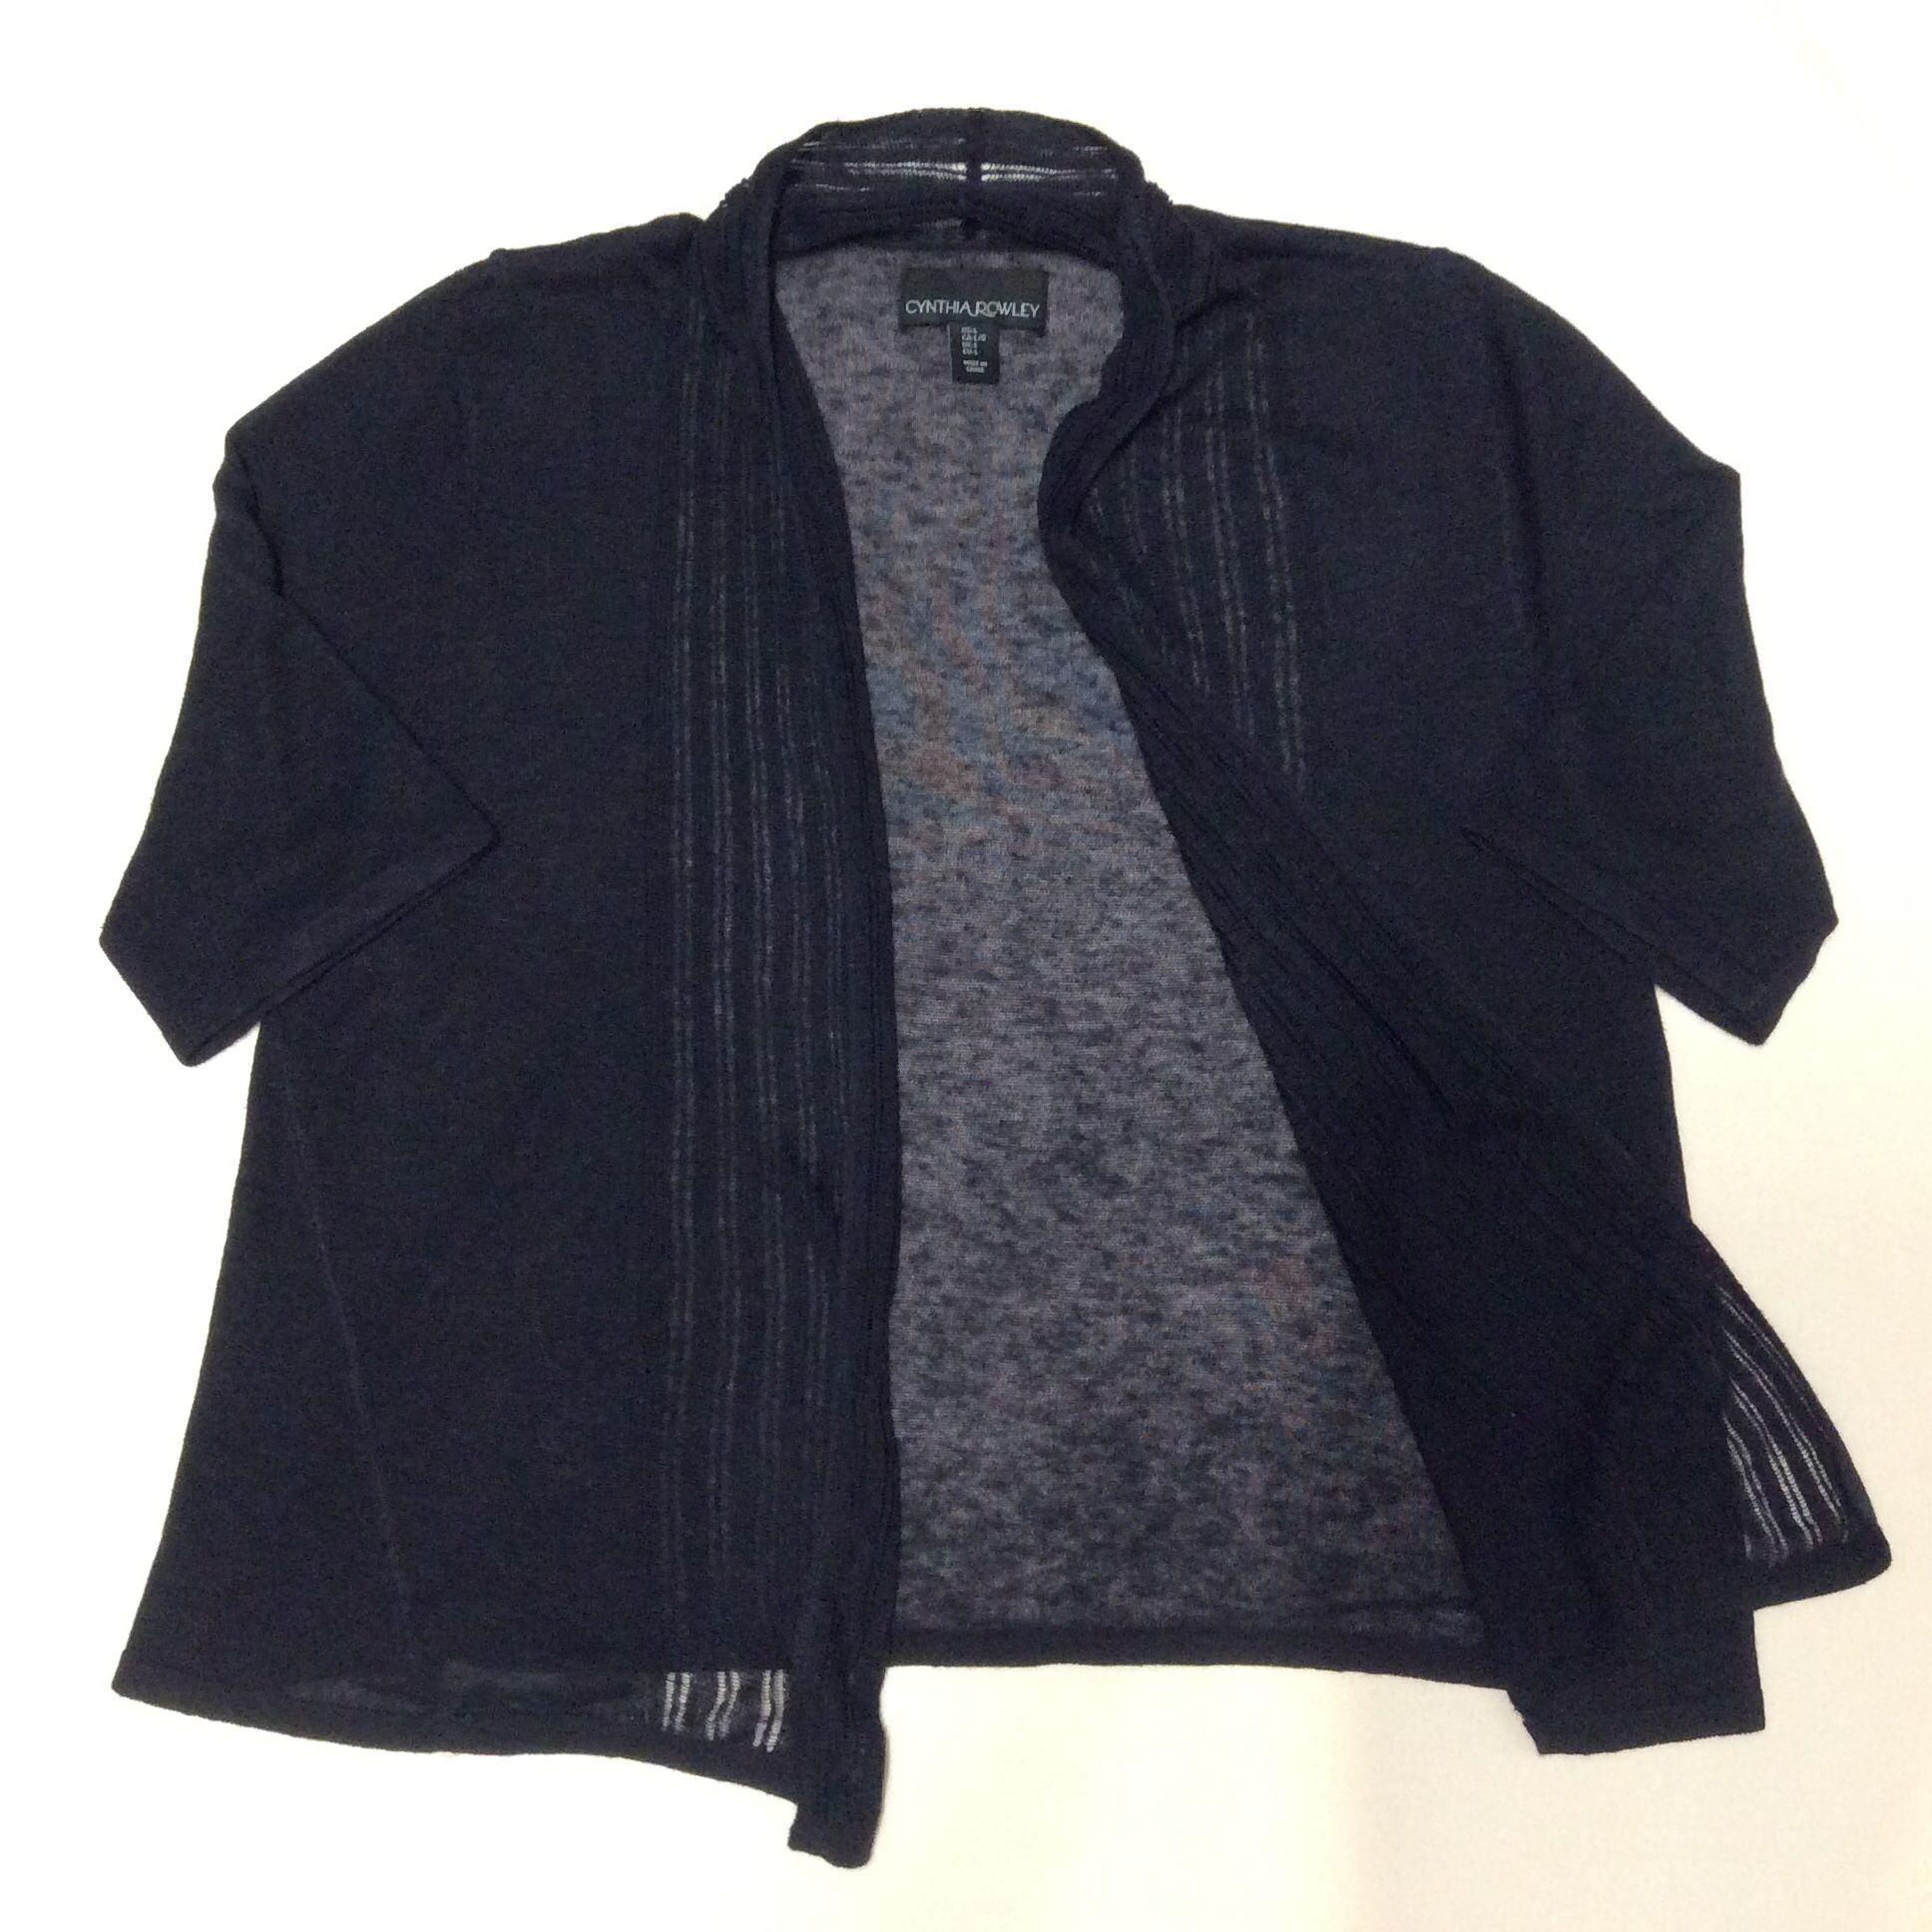 Own it: Cynthia Rowley Short Sleeve Cardigan in Navy, sz L. TJ ...